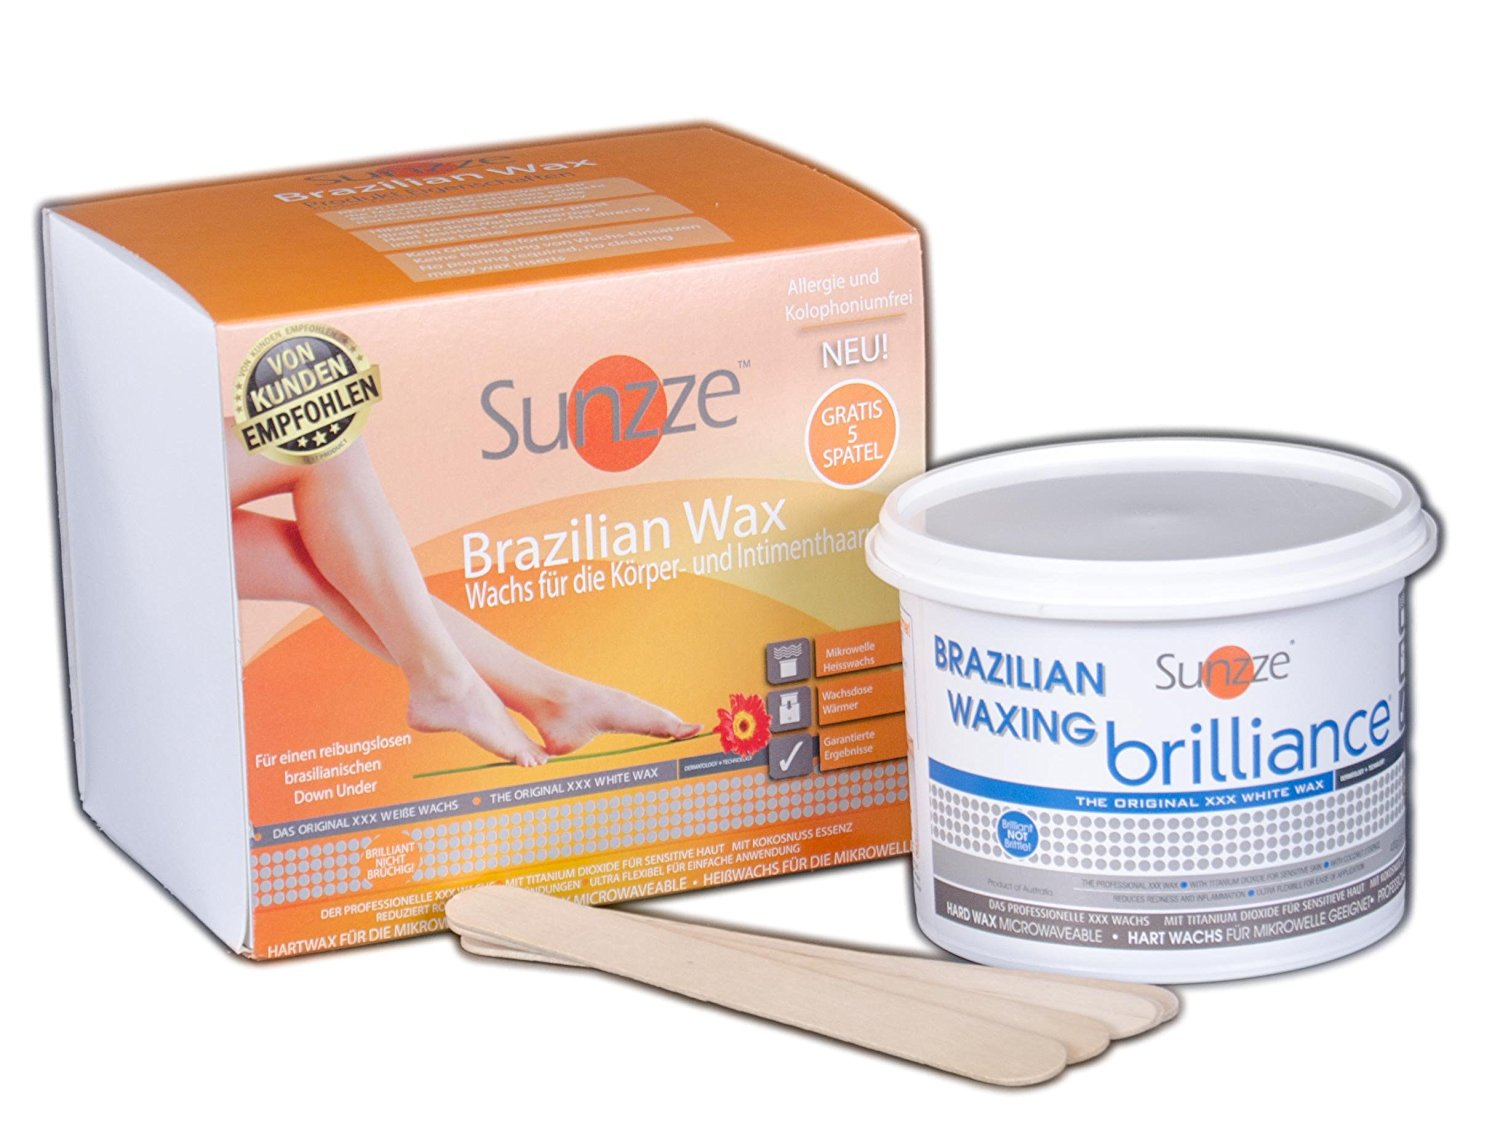 Hair-Wax-Brazilian-Wax-Set